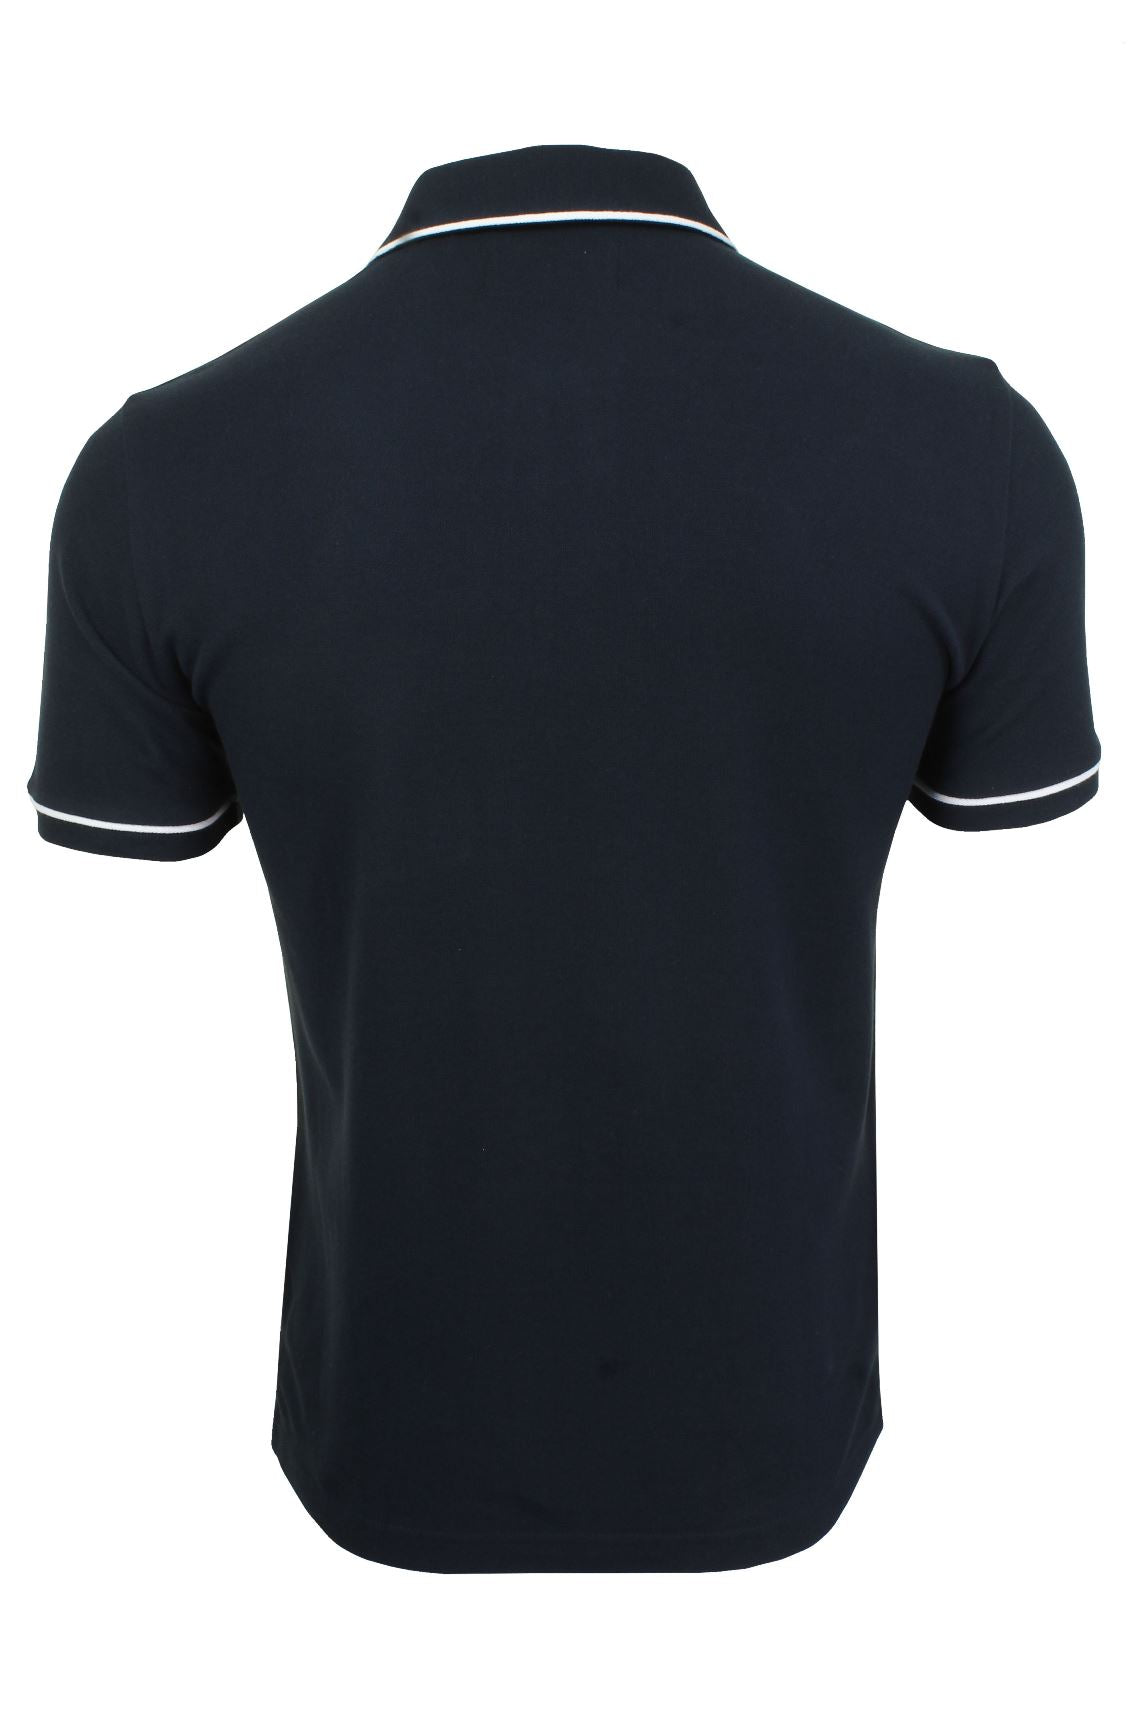 Mens Polo T-Shirt 'Earl' by Original Penguin Short Sleeved-3